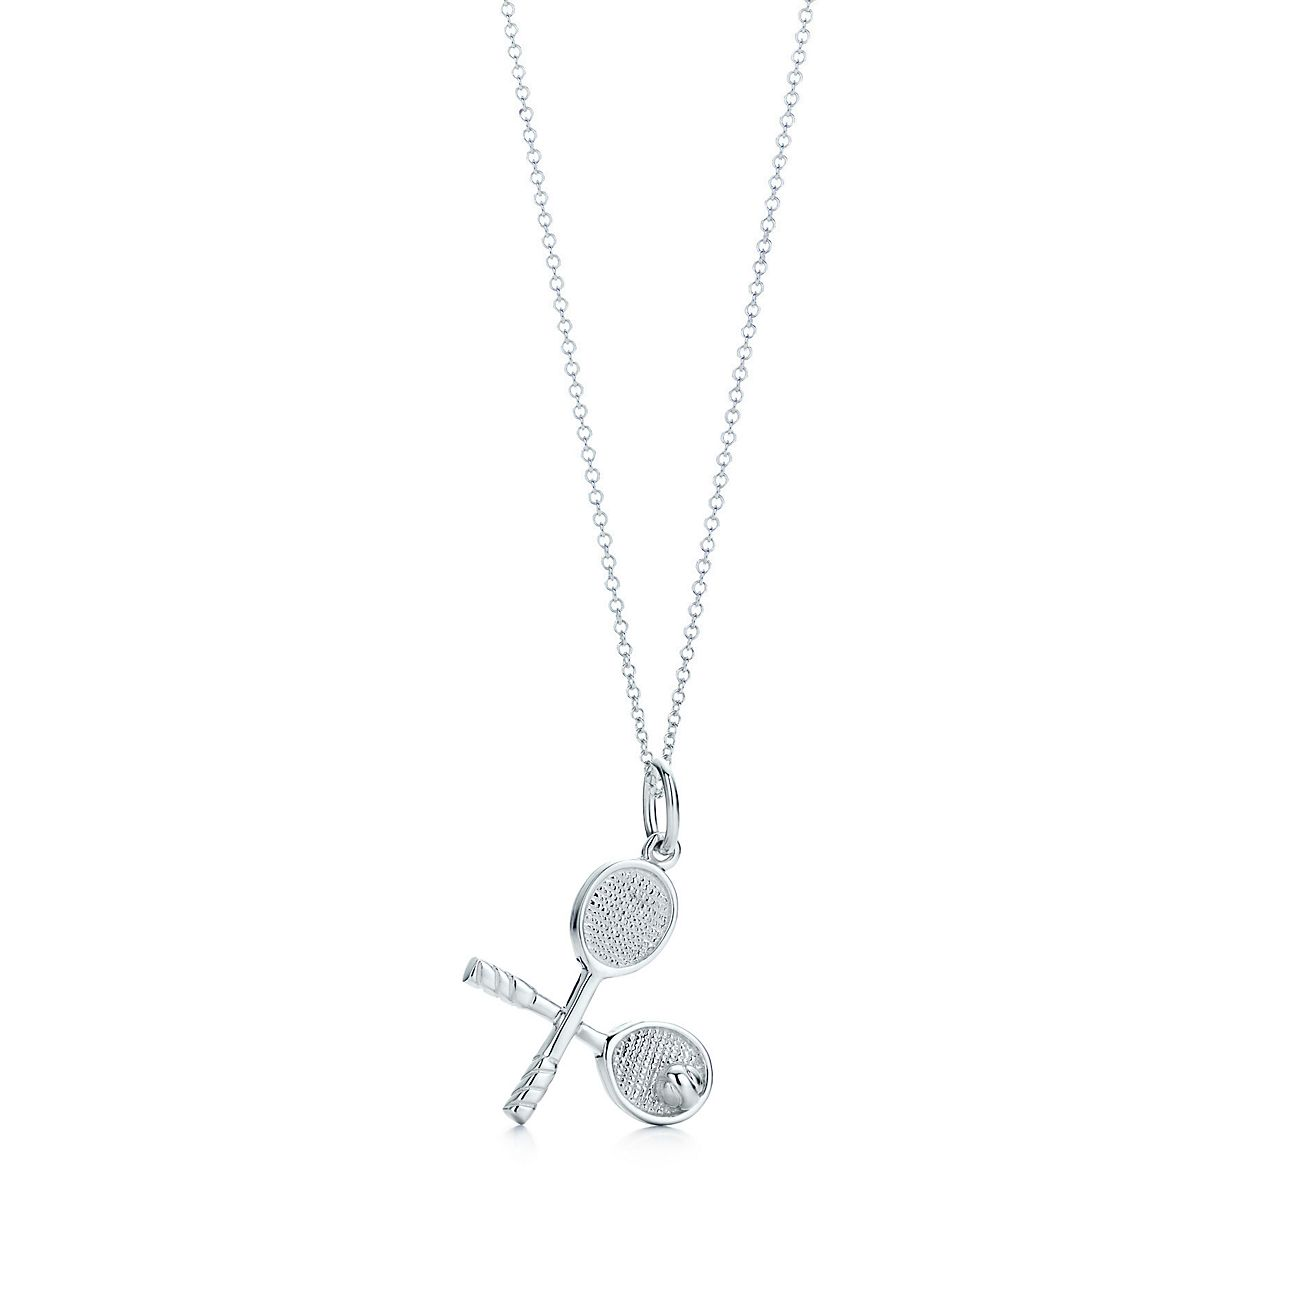 Tennis racquet charm in sterling silver on a chain tiffany co tennis racquet charm and chain aloadofball Images